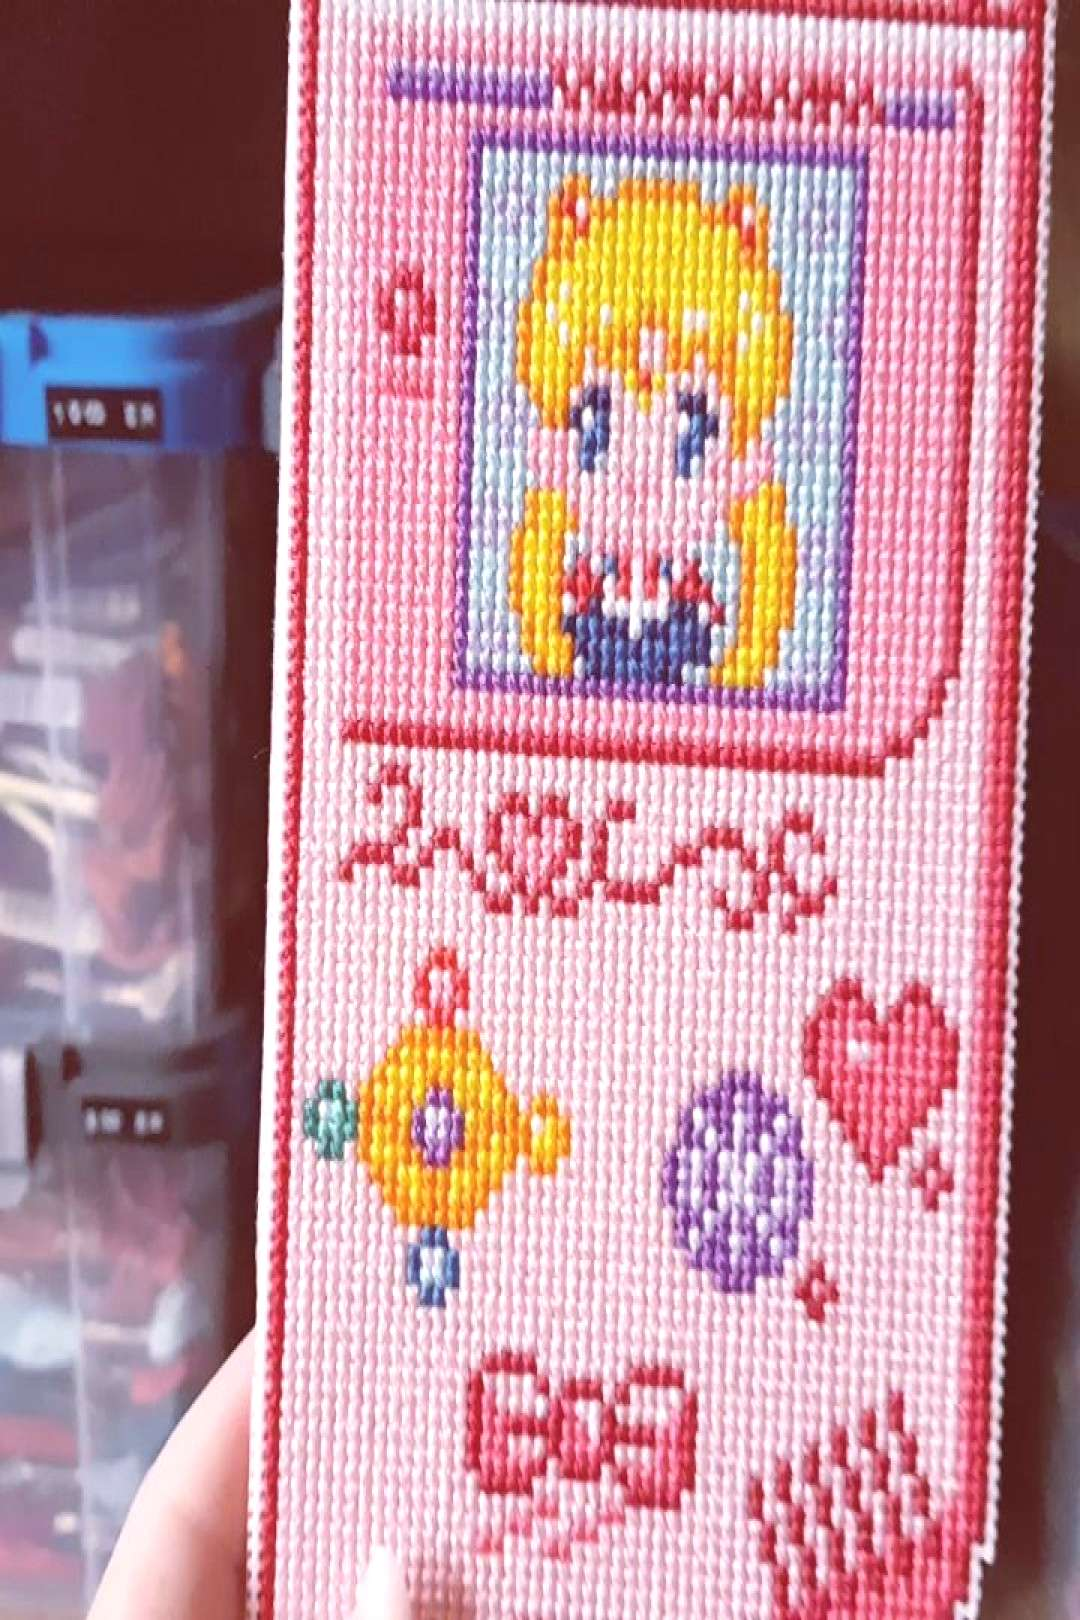 I get asked a lot, what I do with finished Cross Stitch pieces, o